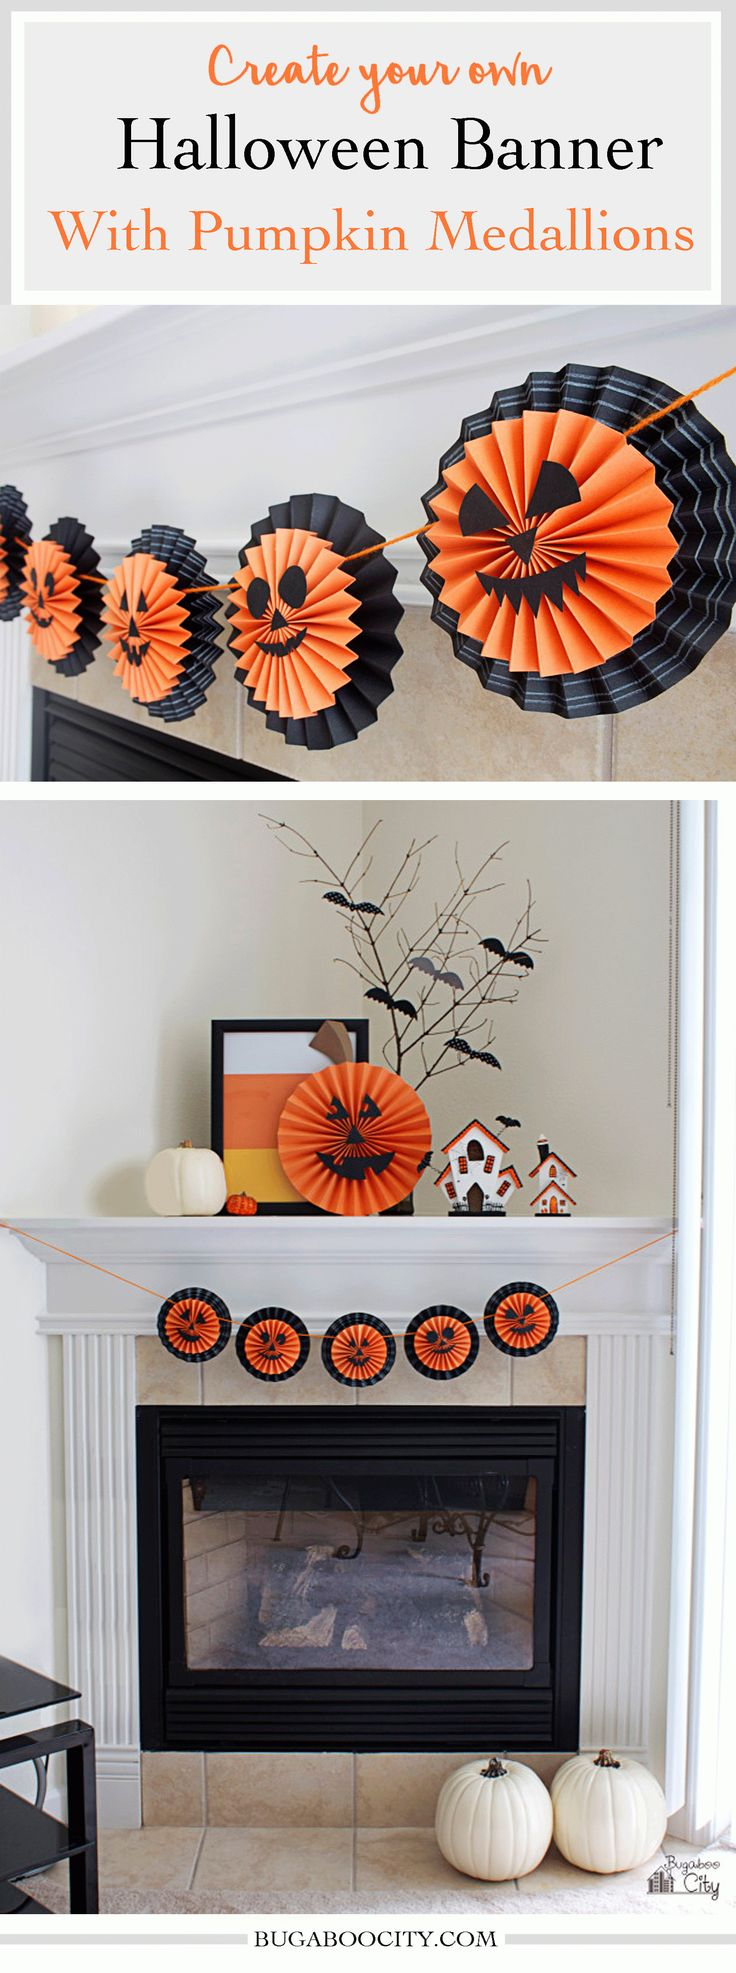 Create Your Own Halloween Banner with pumpkin medallions